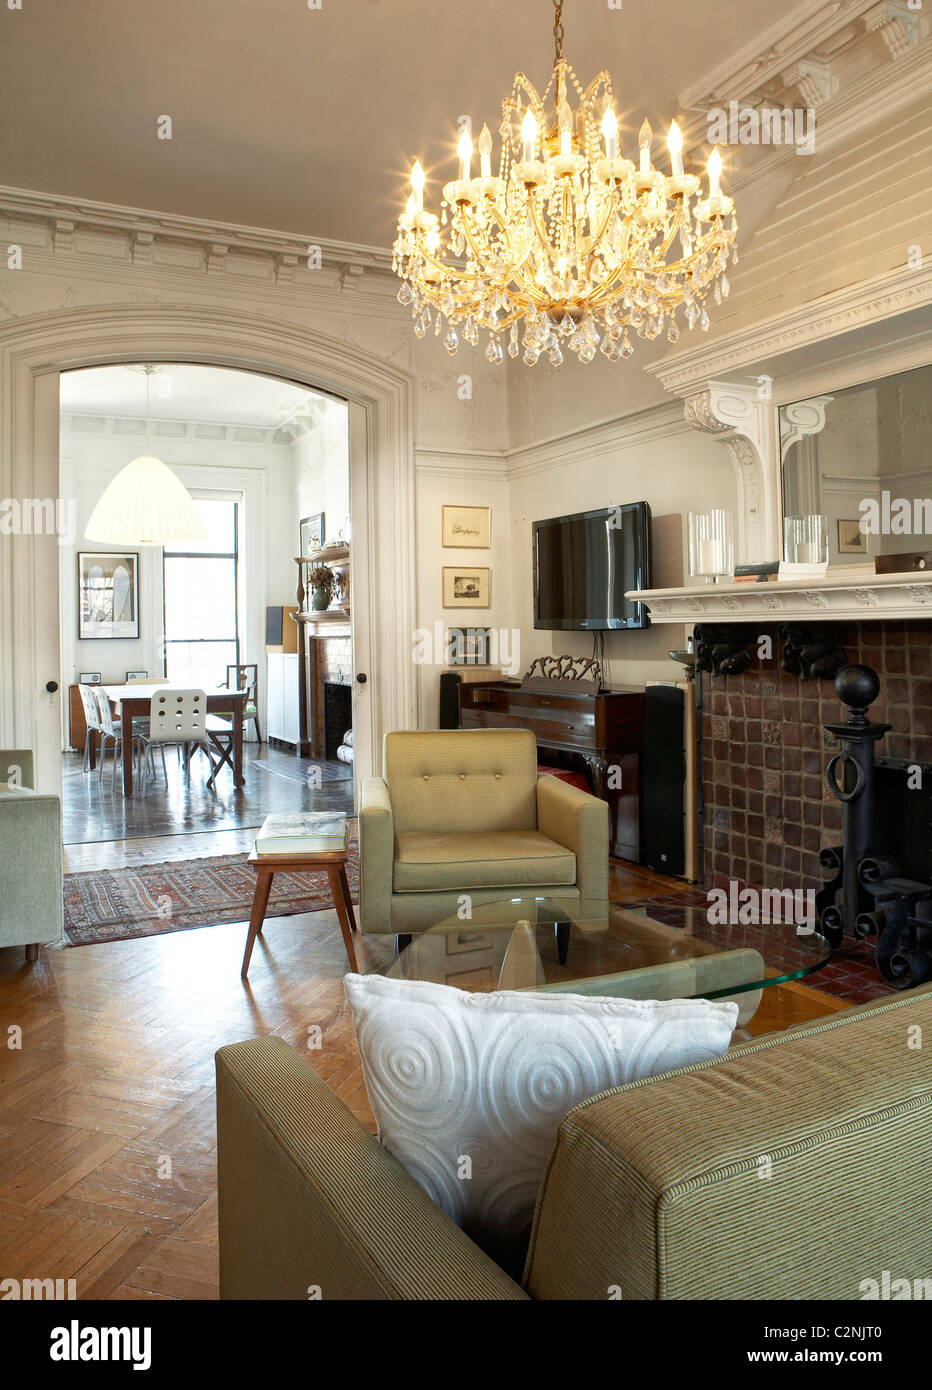 Brooklyn Brownstone Interior. Linked Living Room And Dining Room With Lit  Chandelier, Parquet Flooring, Brick Fireplace And